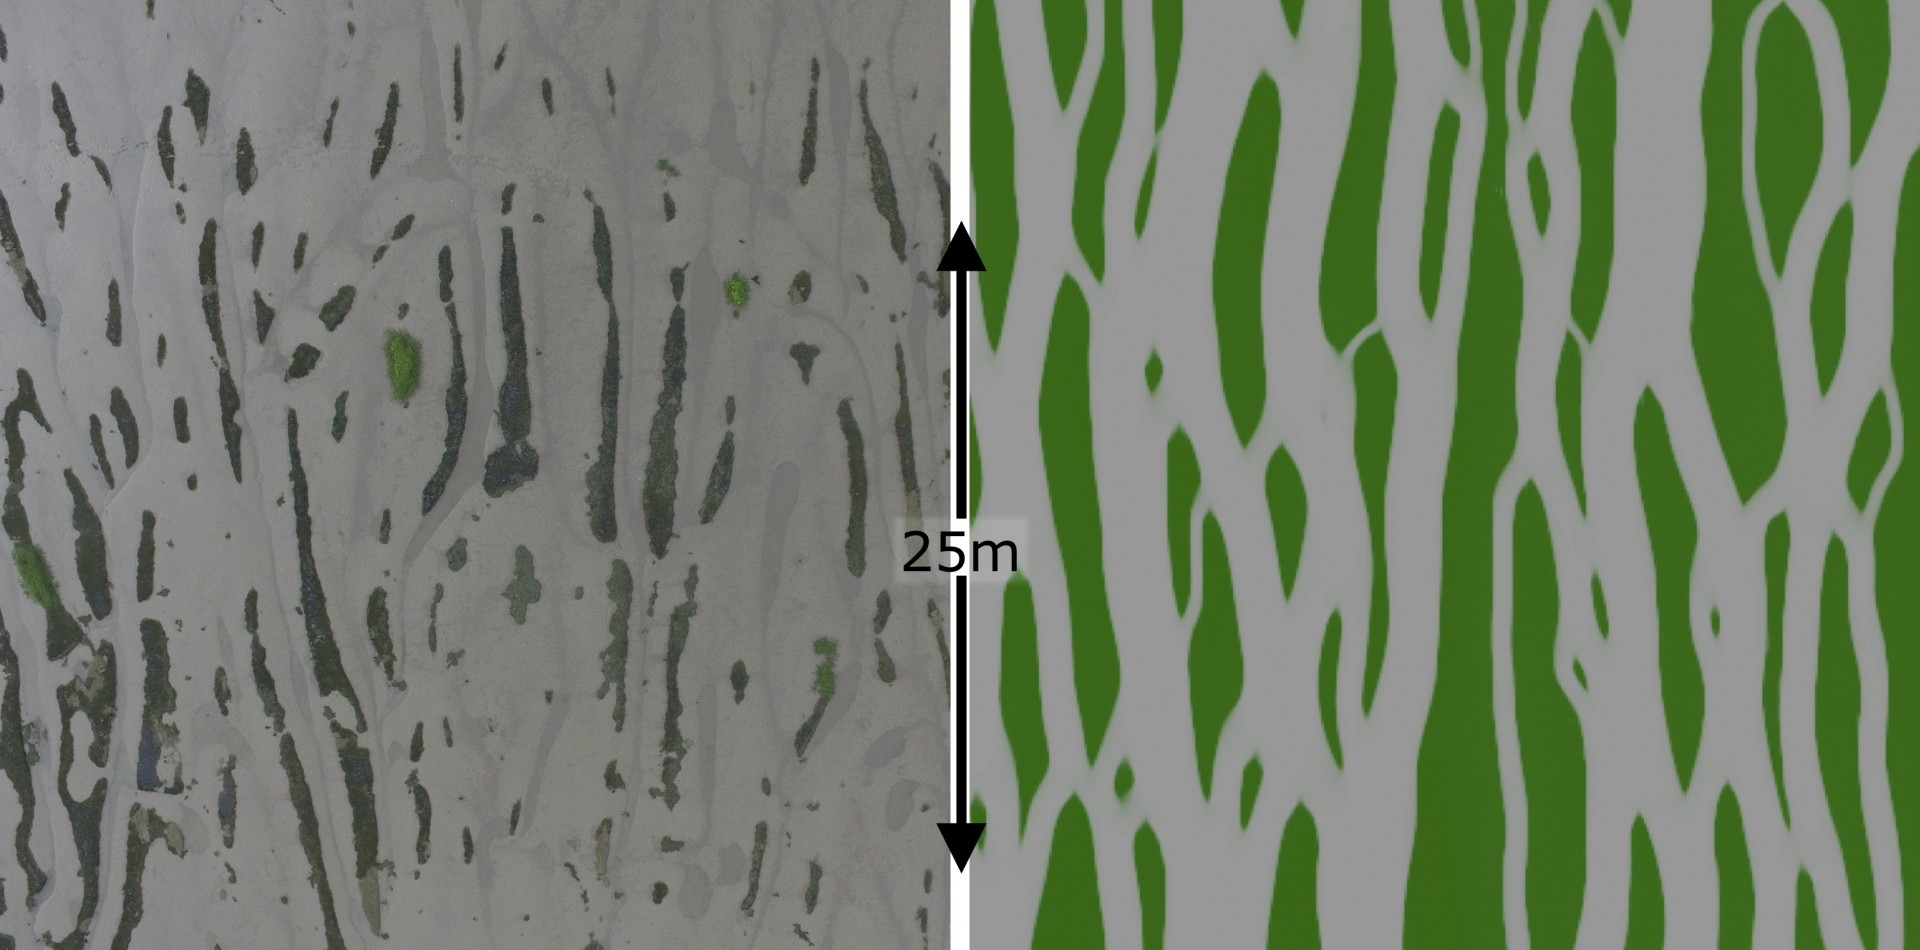 Algae create self-organised bedforms on tidal flats, enhancing drainage. Bedforms observed with a drone (left) and simulated in a numerical model (right).